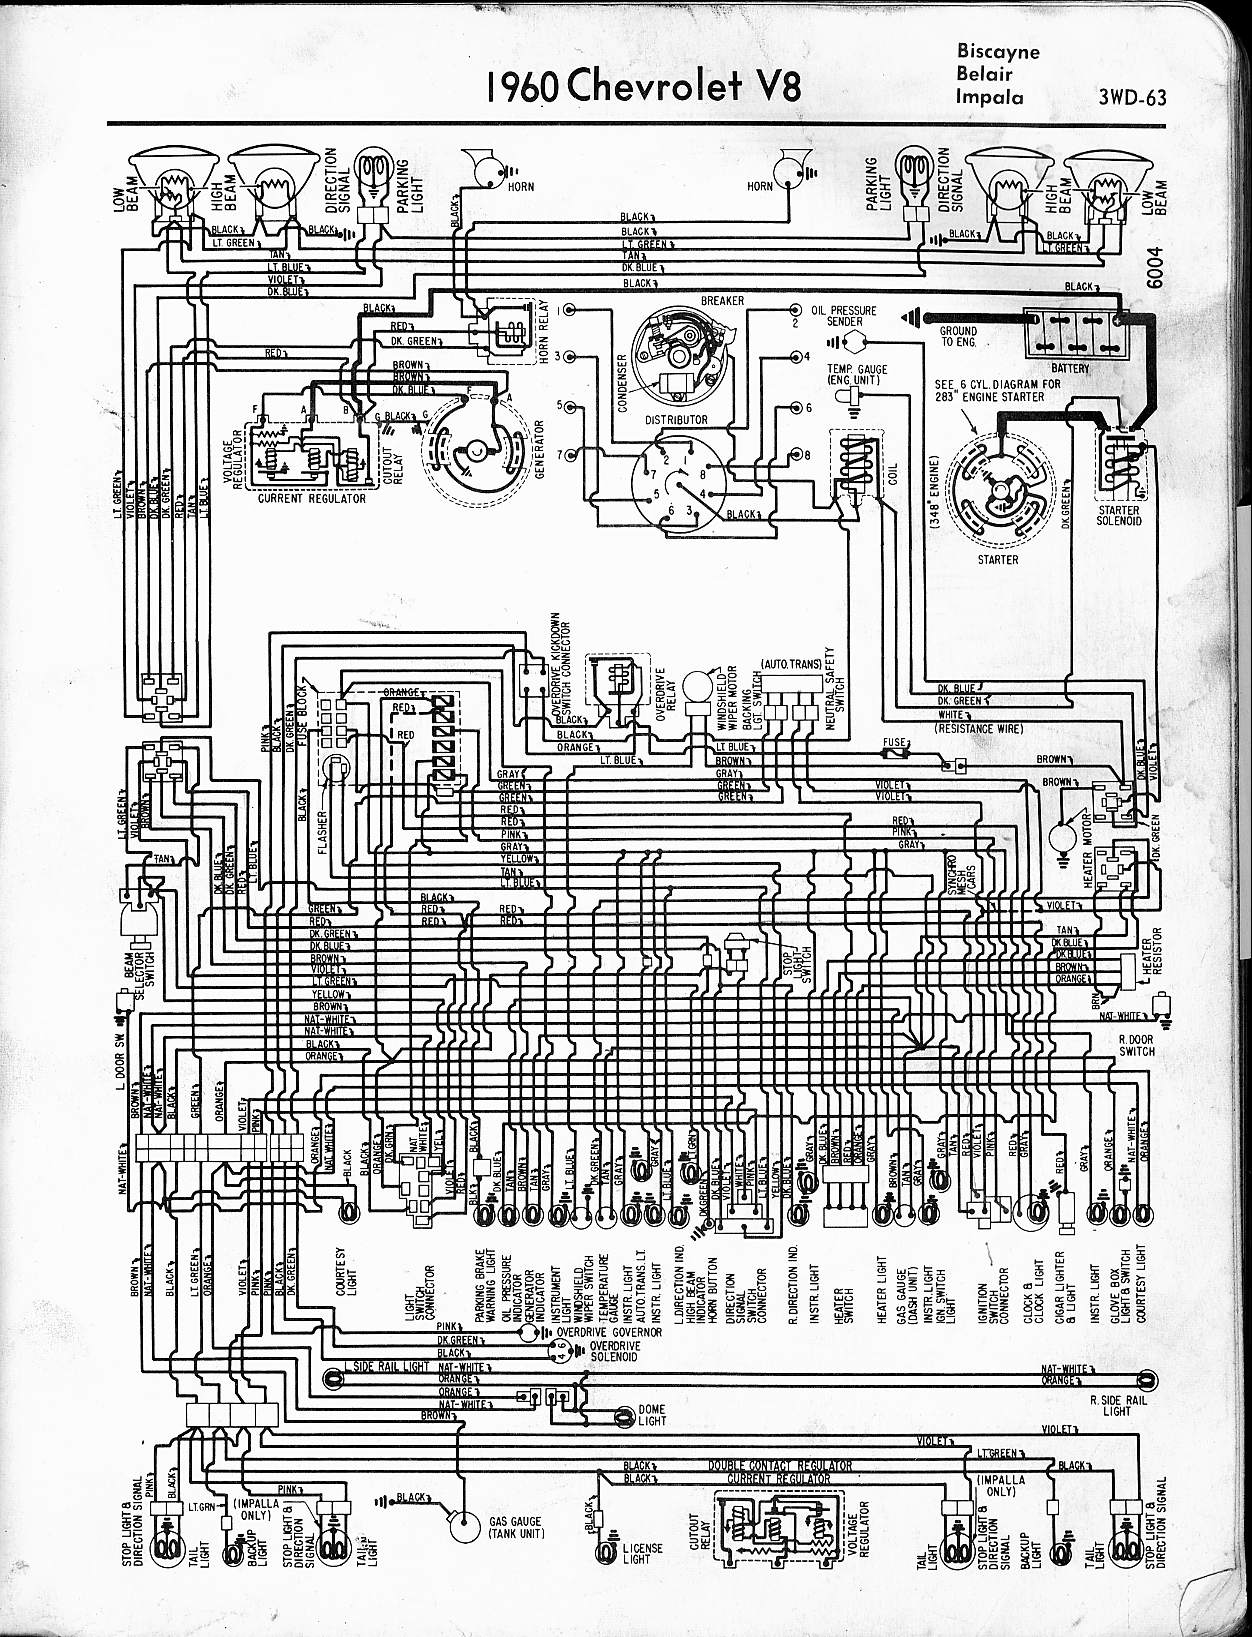 hight resolution of 1960 corvette wiring harness data wiring diagram 79 corvette stereo wiring diagram 1960 corvette wiring diagram